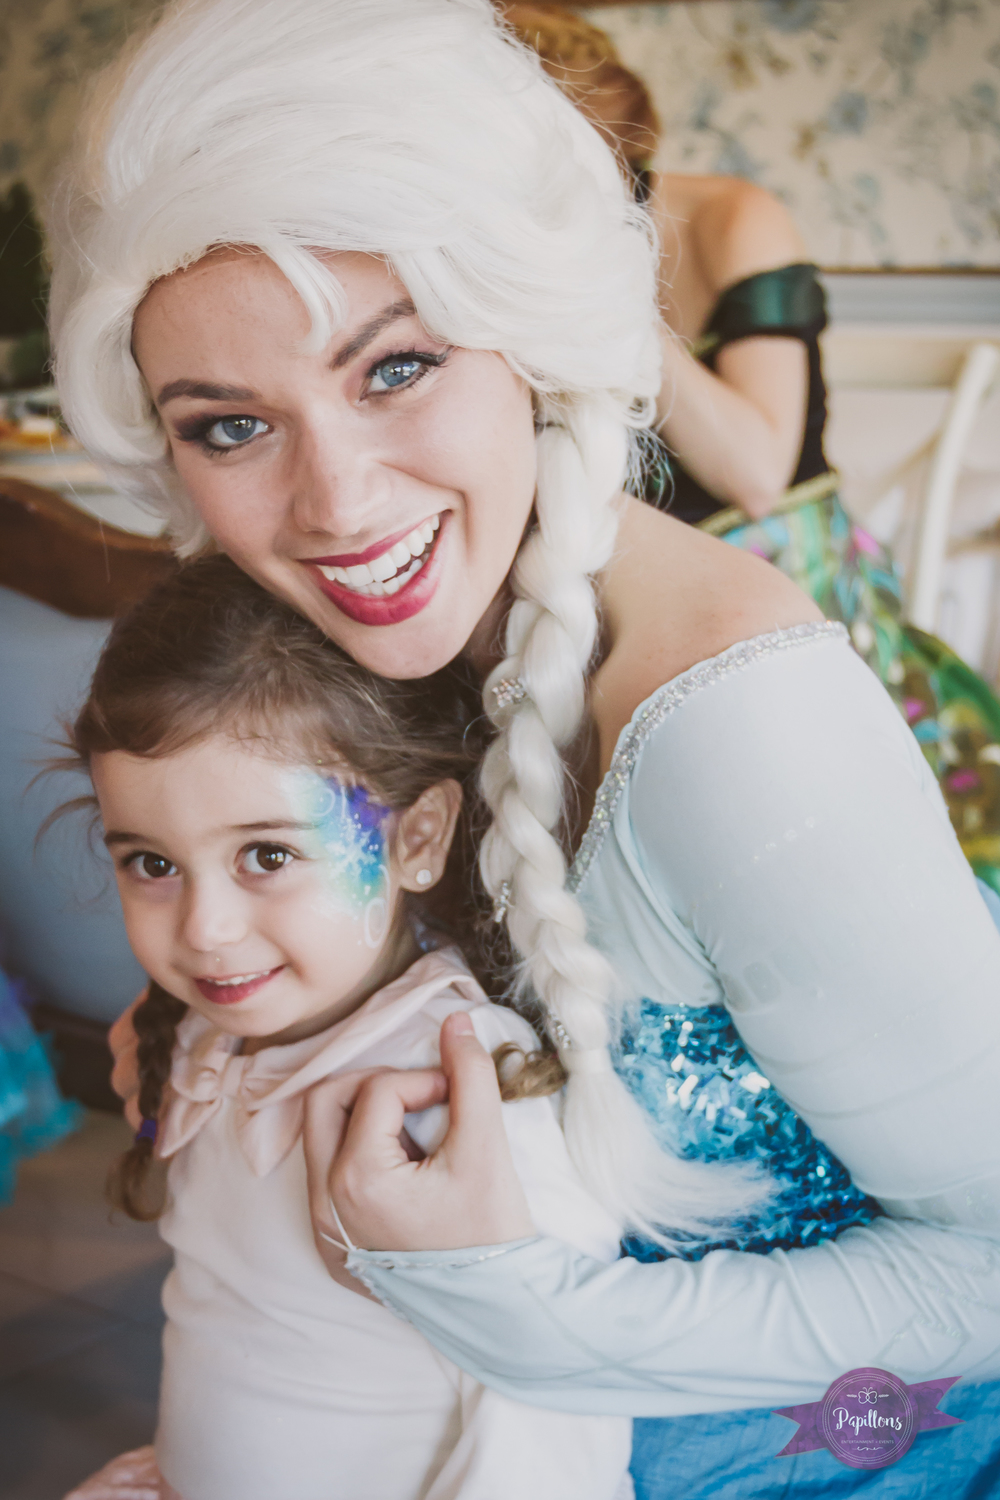 queen elsa and olivia french confection co tea party (1 of 1).jpg